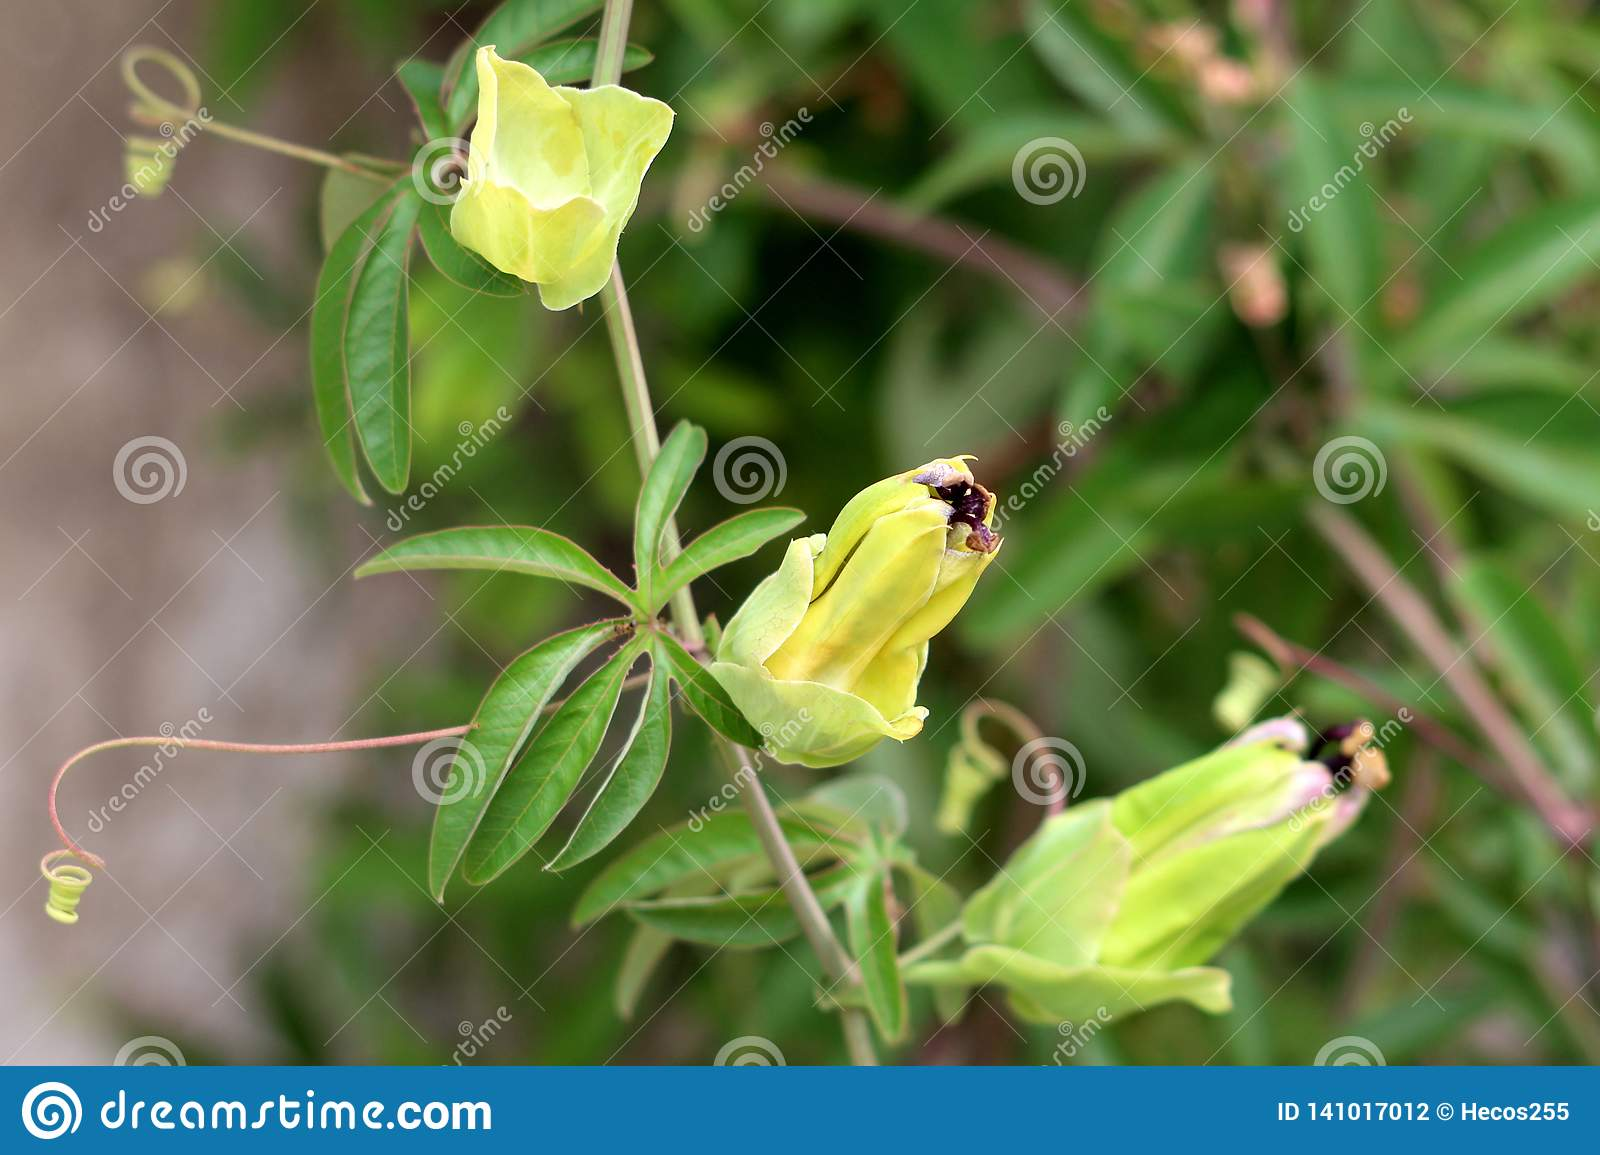 Passion fruit or Passiflora edulis plant with multiple closed flowers waiting to open and bloom surrounded with green leaves in